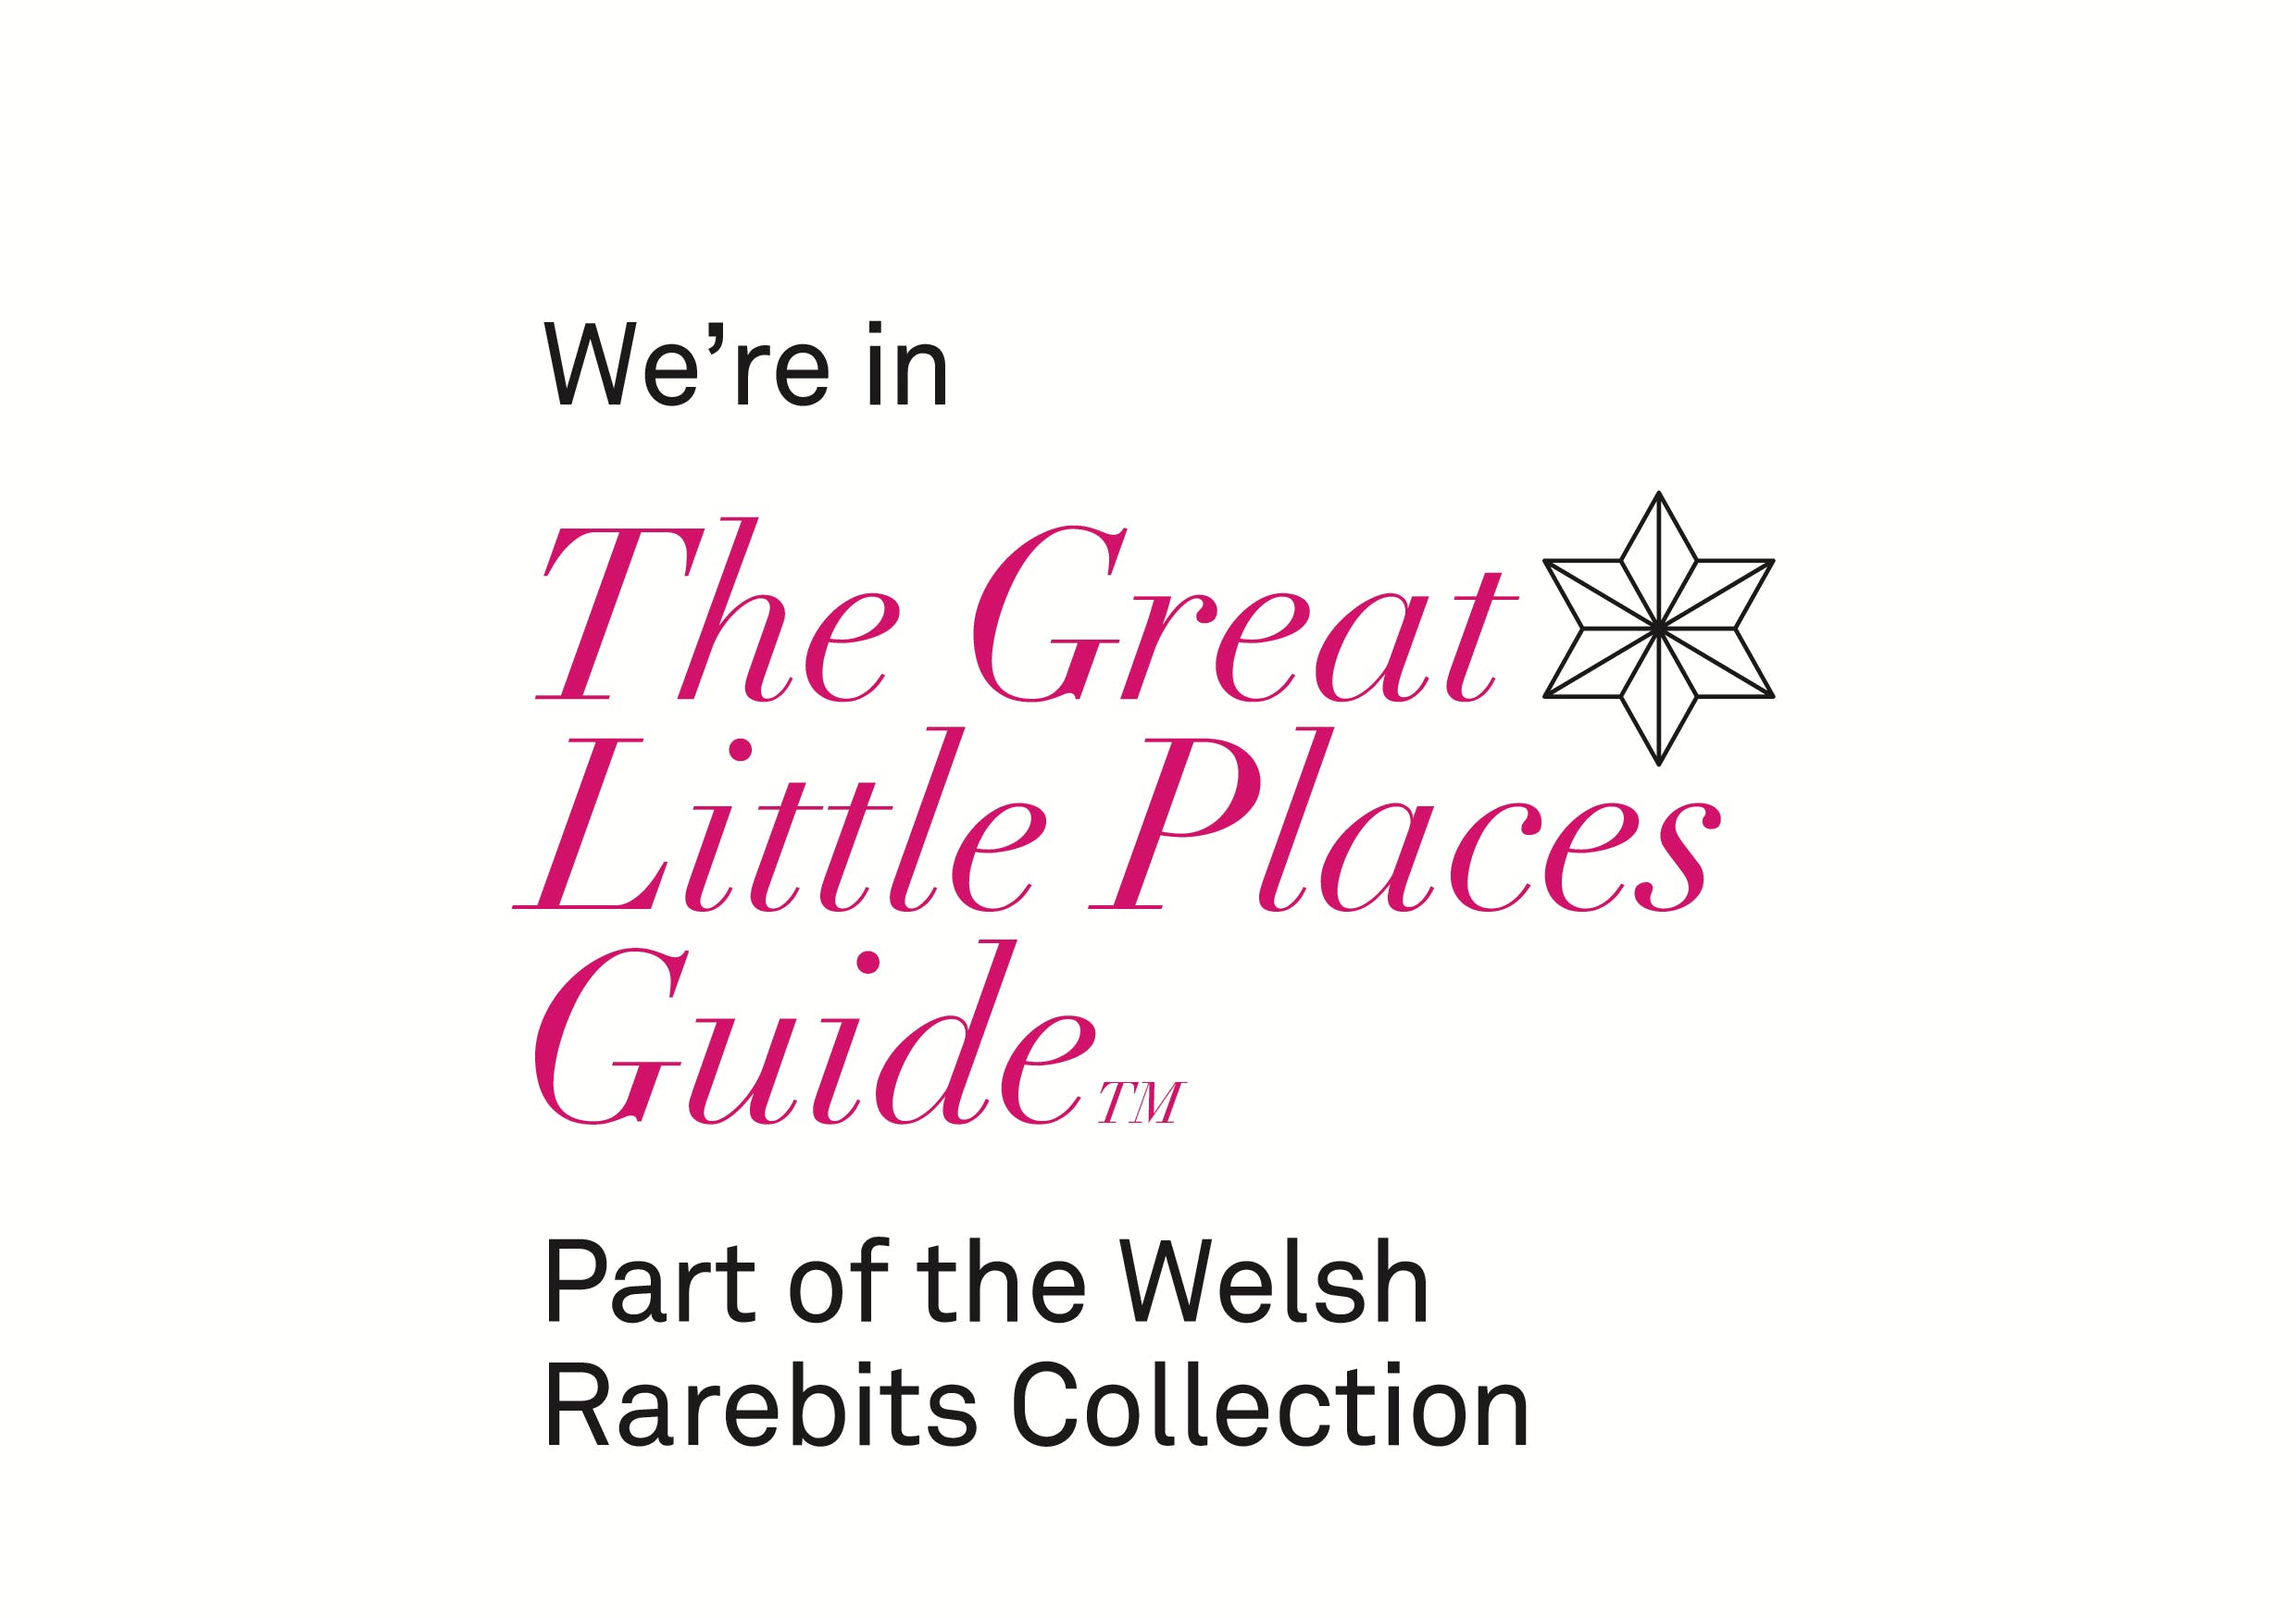 globe angle great little places welsh rarebits